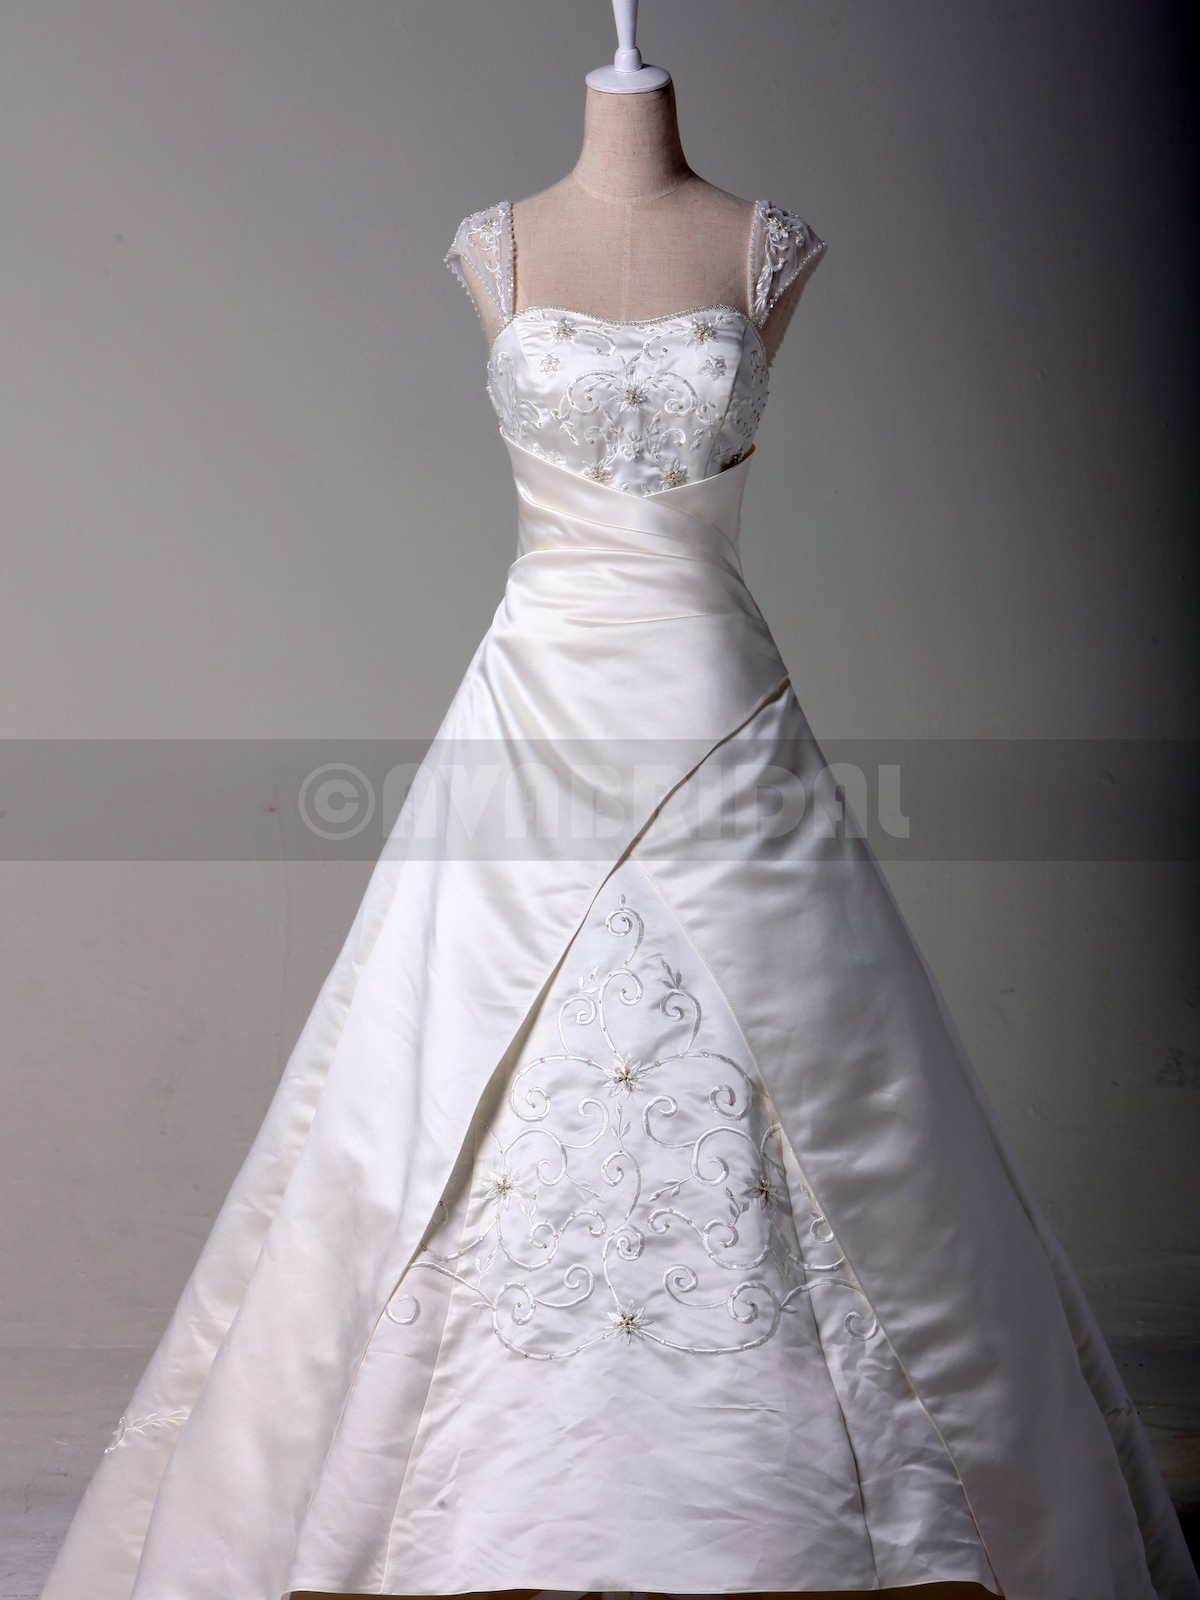 Modest Wedding Dress - Bonnie - Front